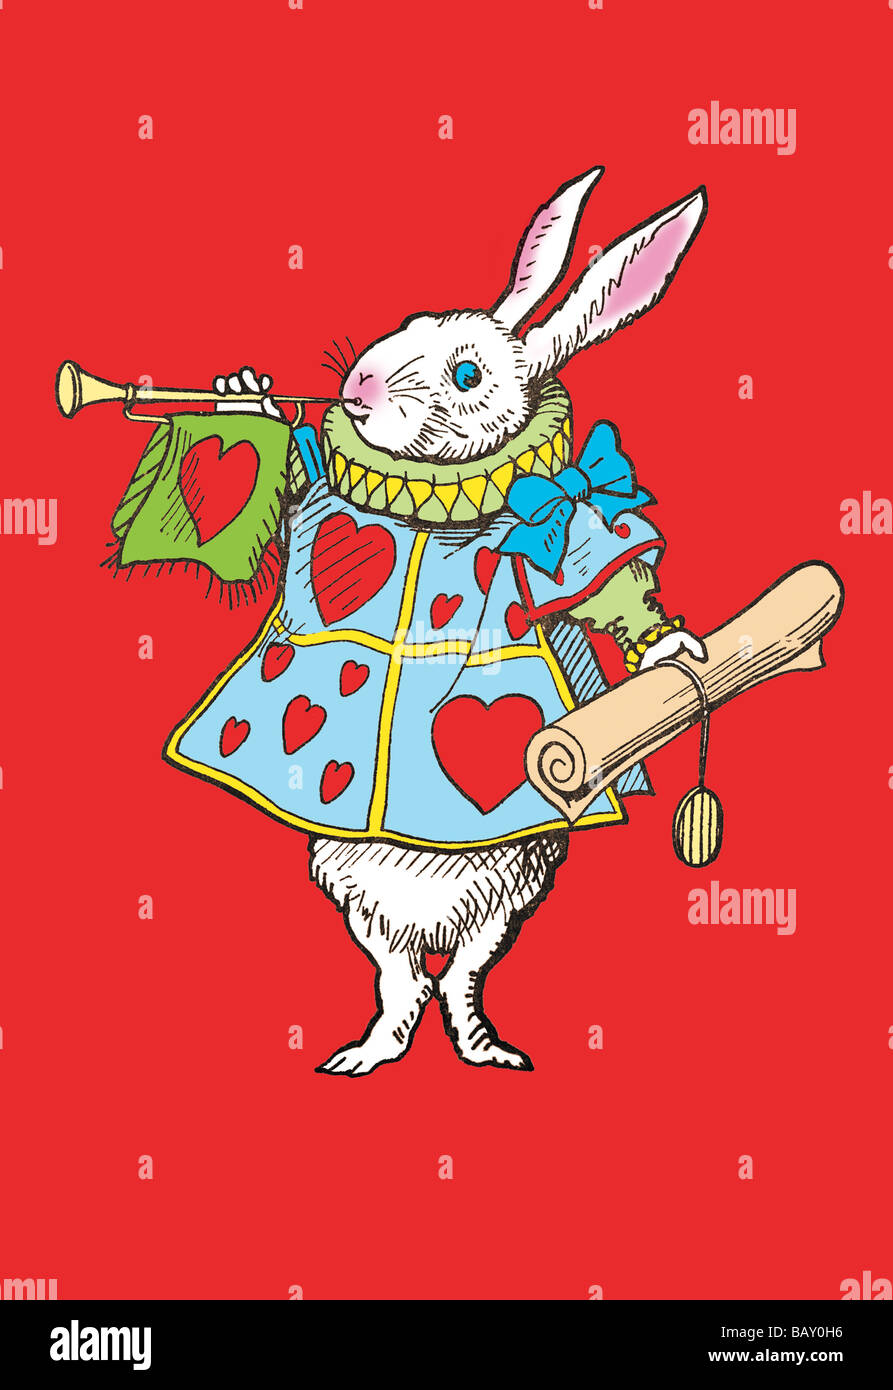 Alice in Wonderland: Horn and Hearts - Stock Image